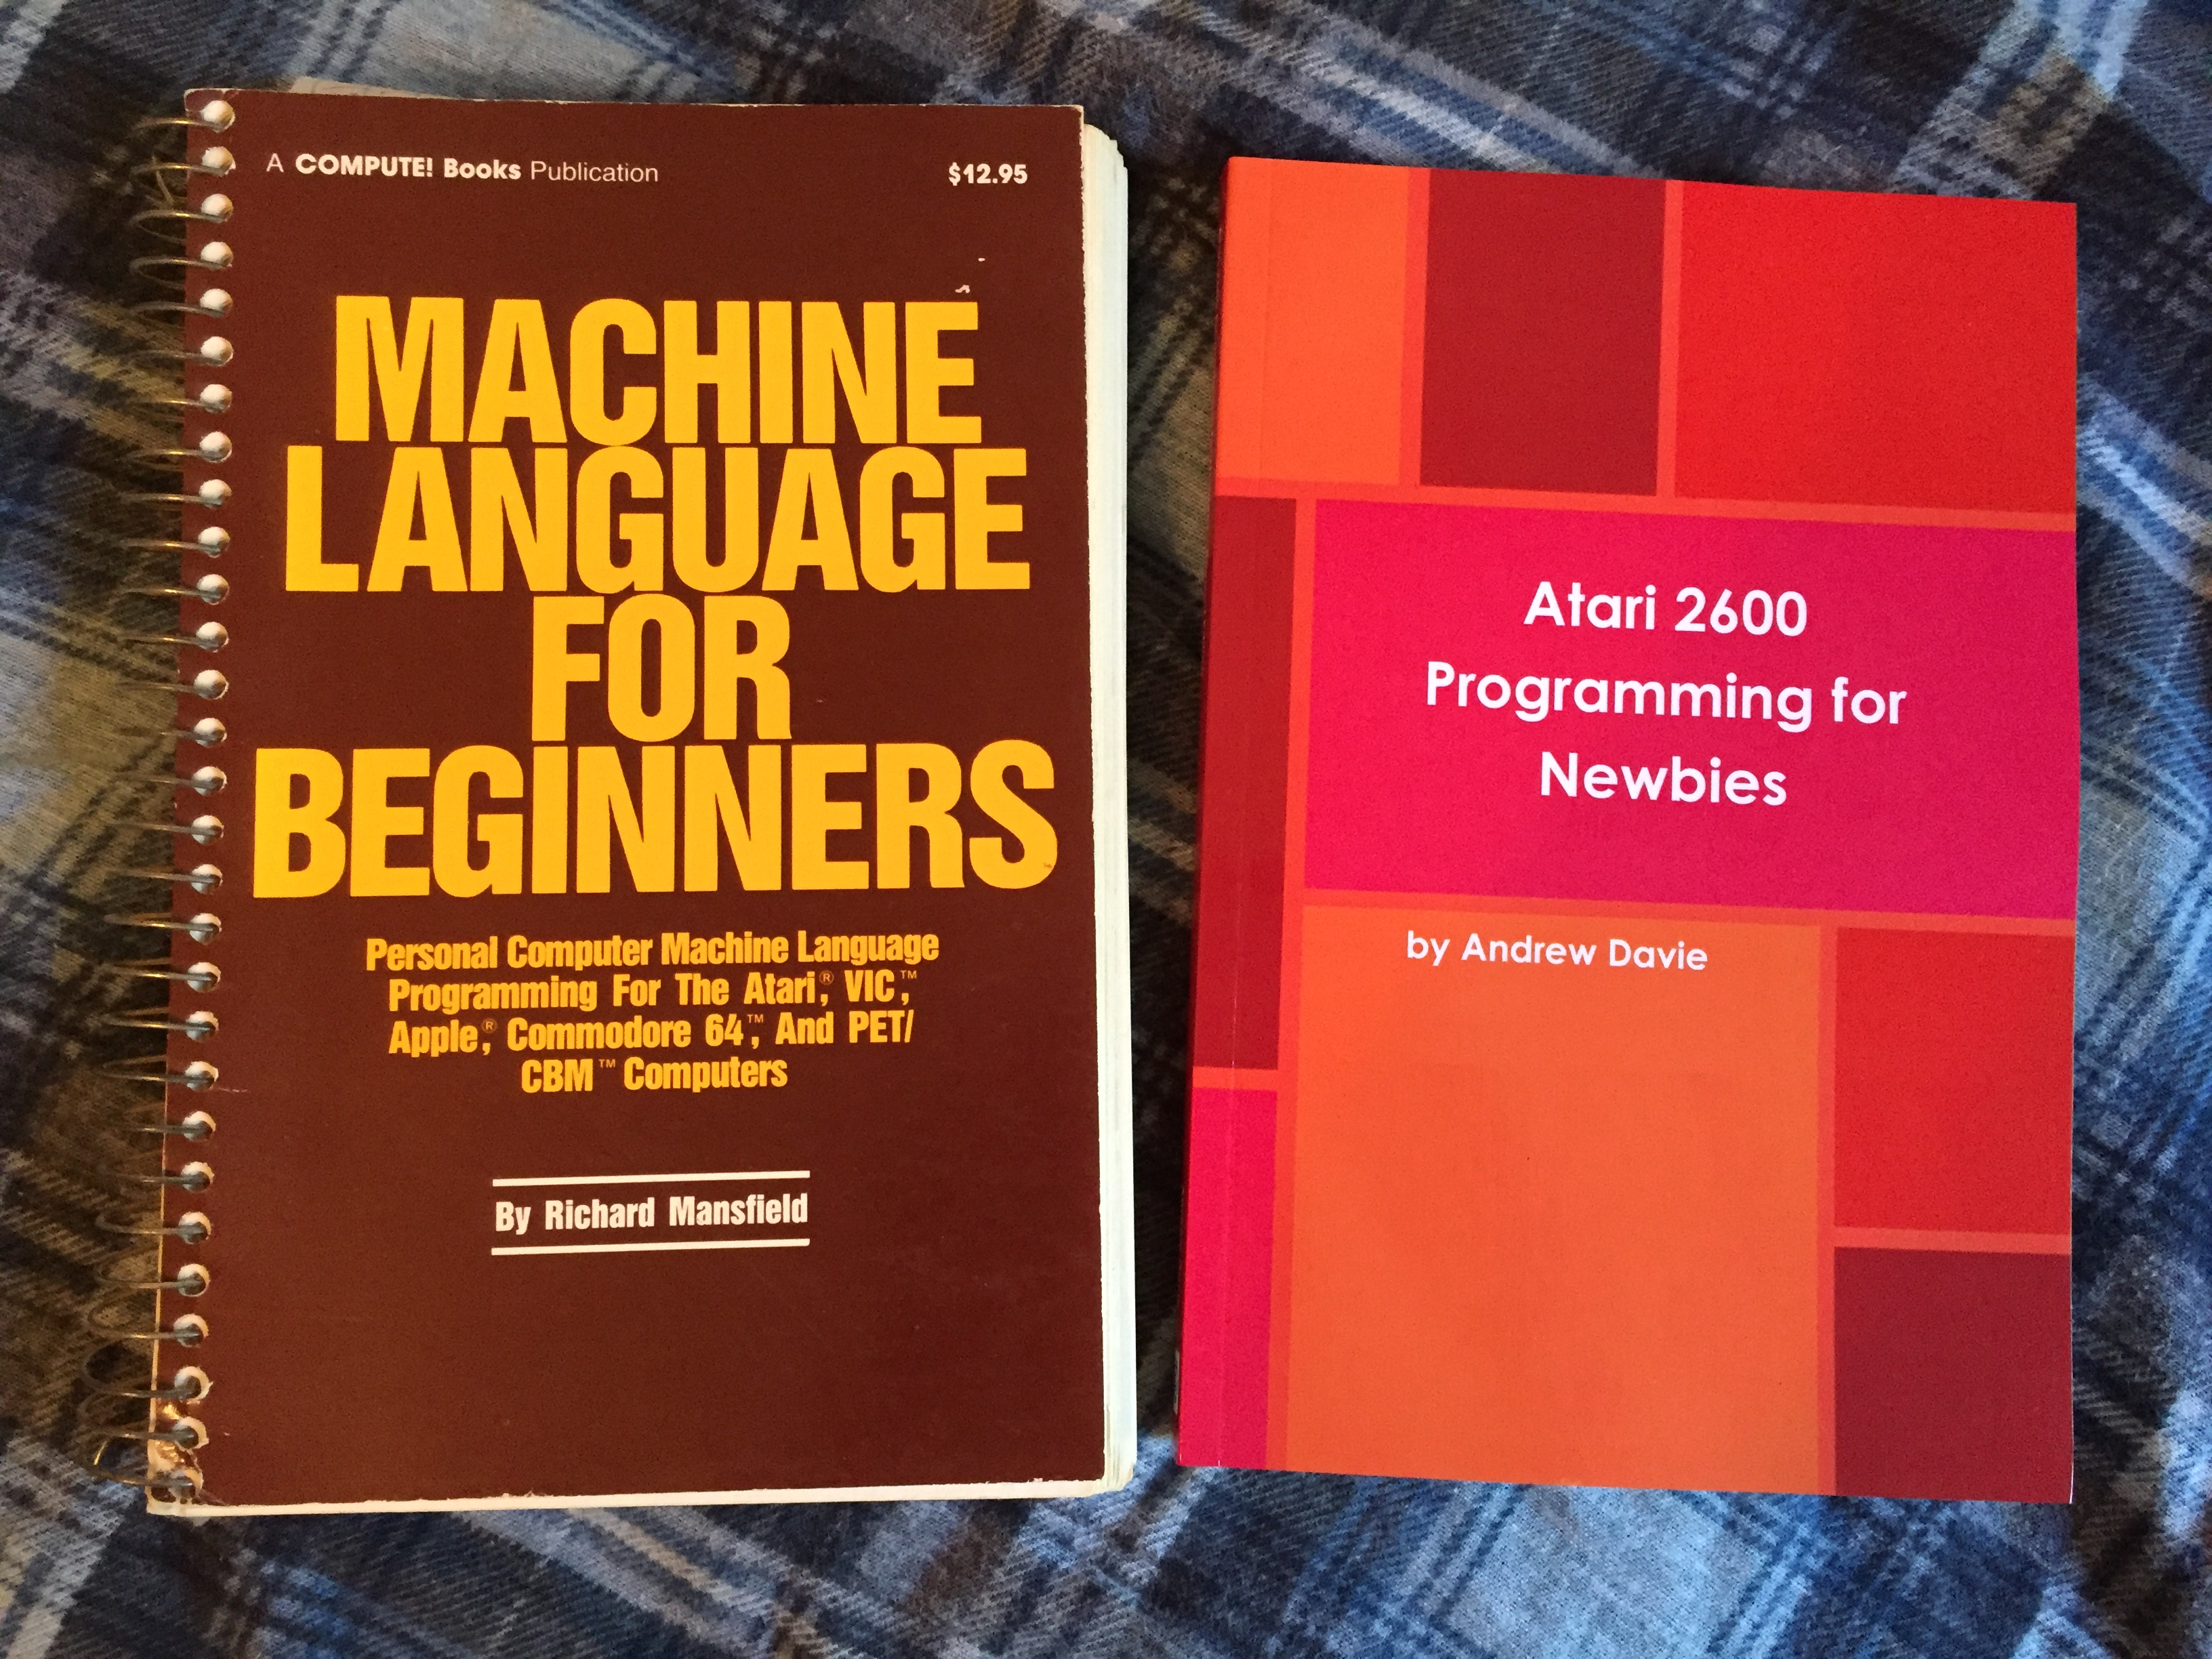 Atari 2600 Programming for Newbies - the book - Atari 2600